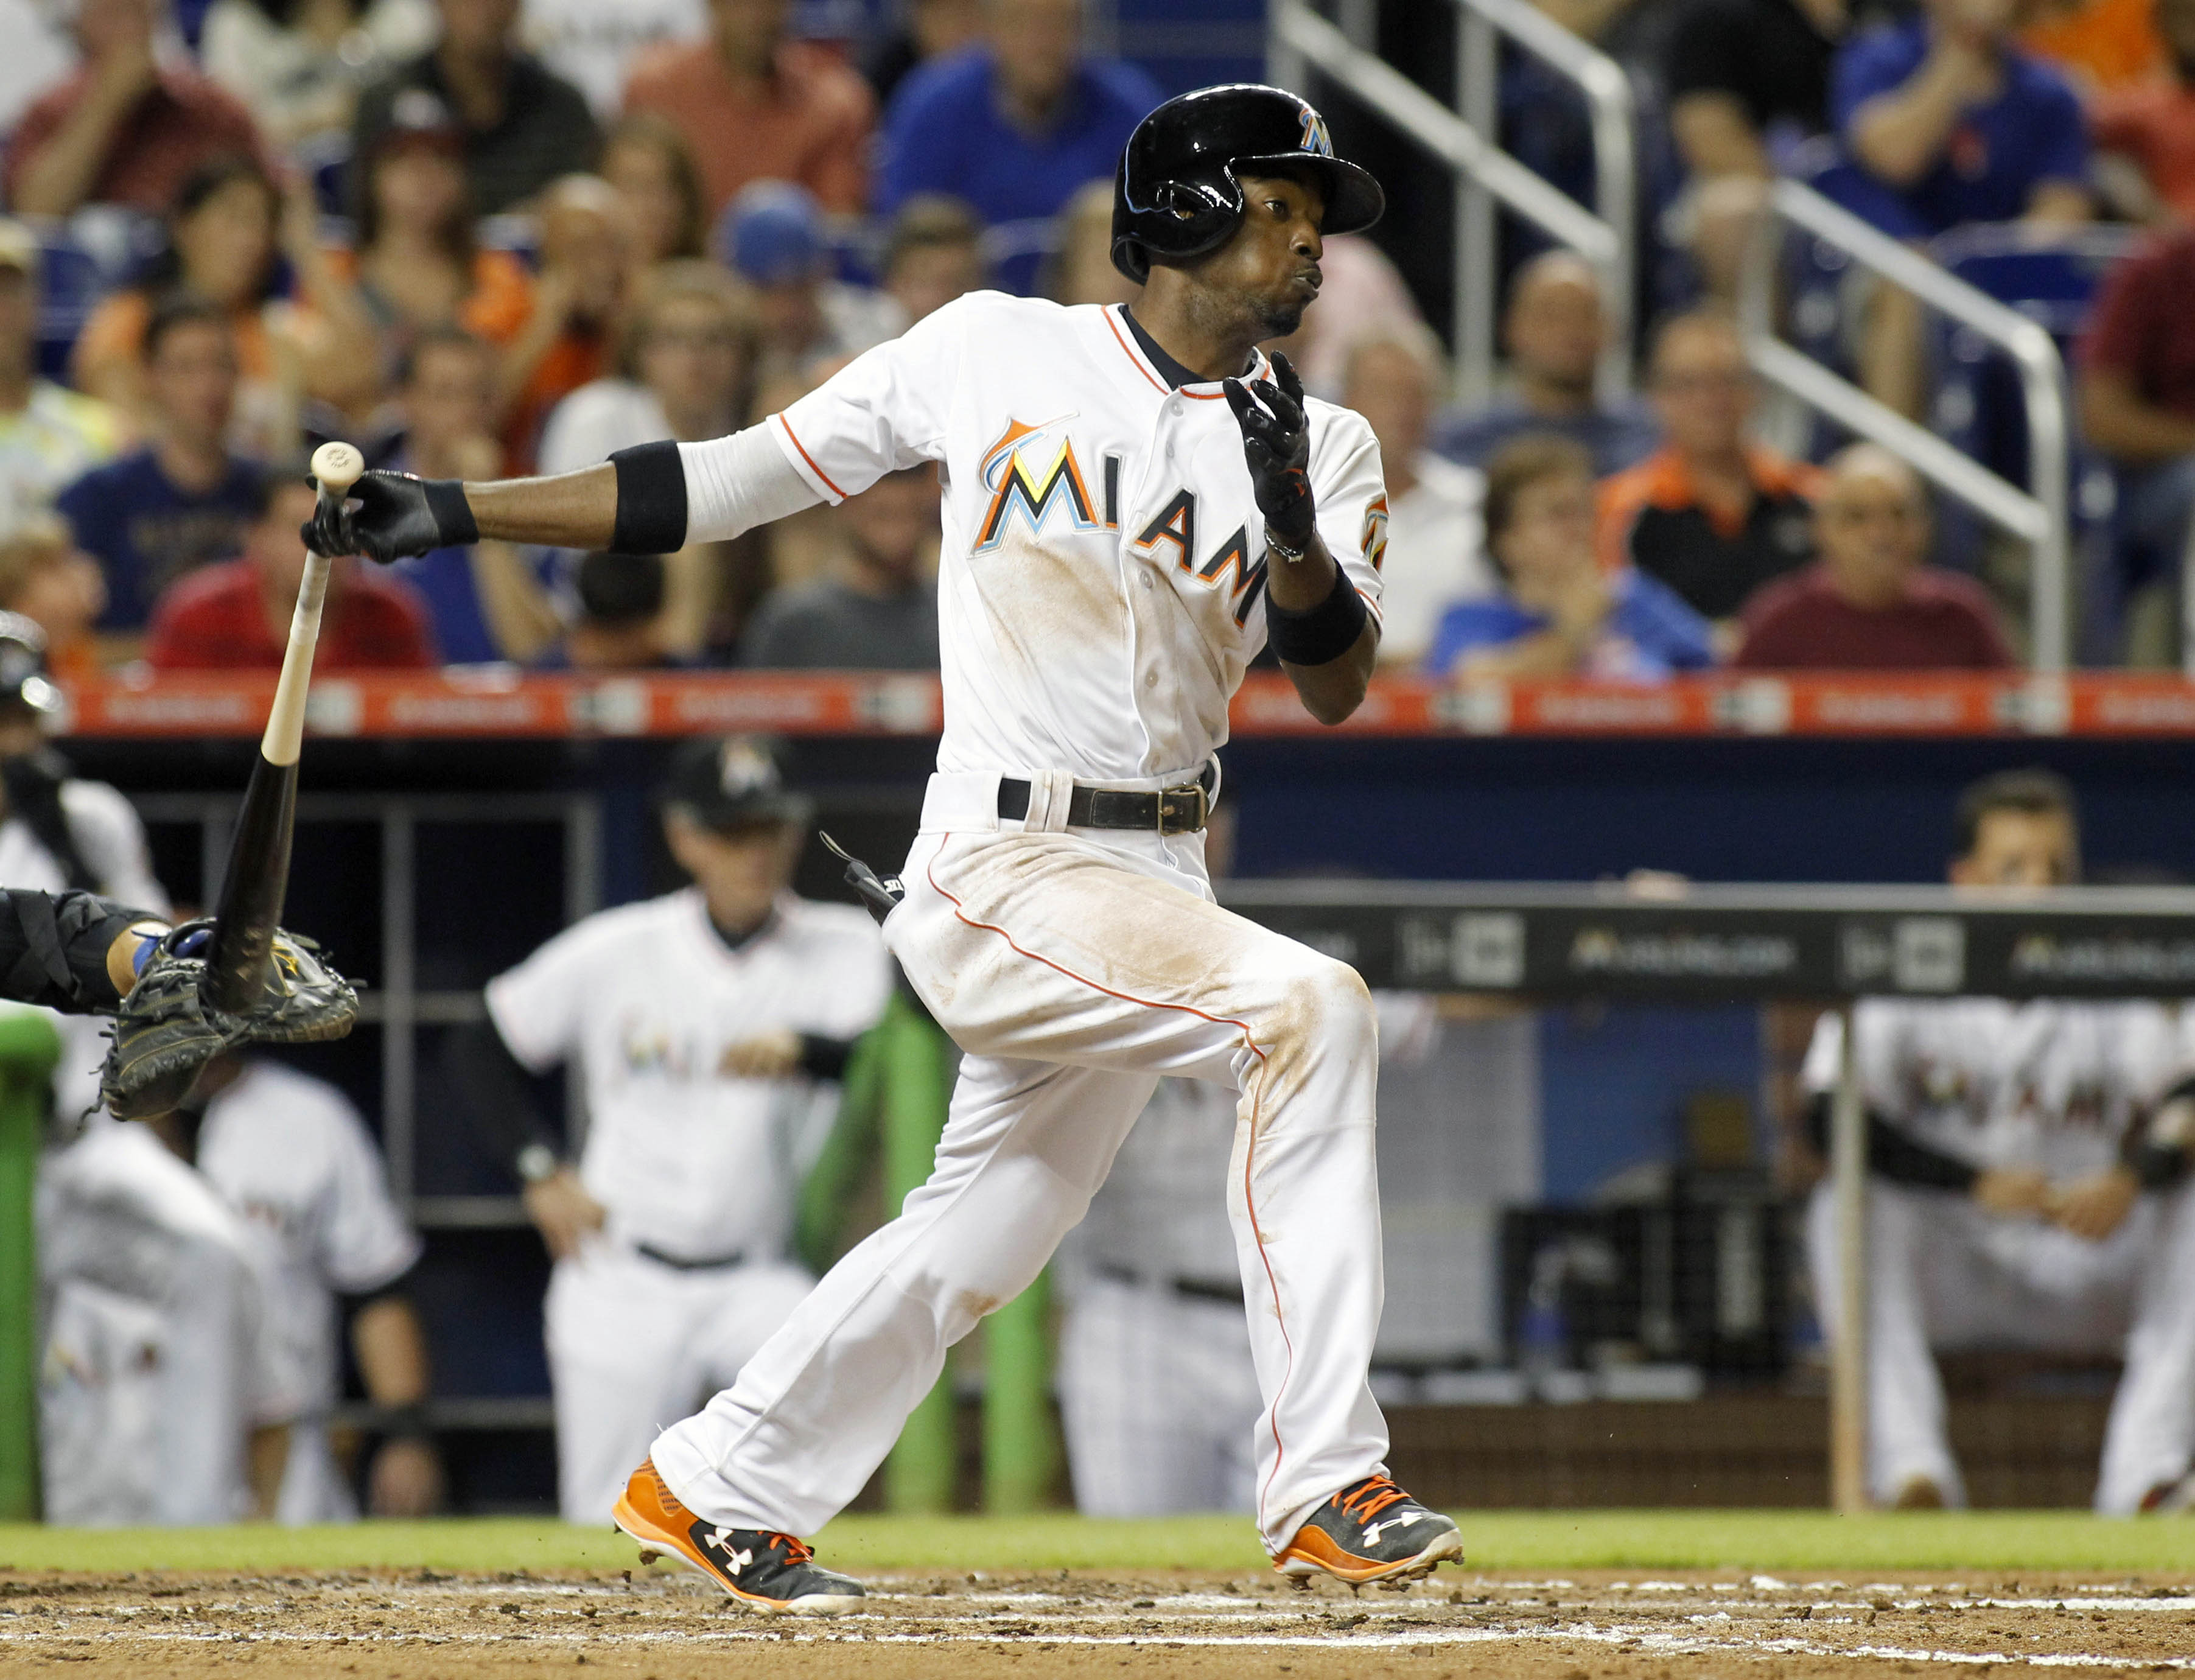 Miami Marlins' Dee Gordon hits an RBI single in the third inning of play against the New York Mets during a baseball game in Miami, Tuesday Aug. 4, 2015. (AP Photo/Joe Skipper)